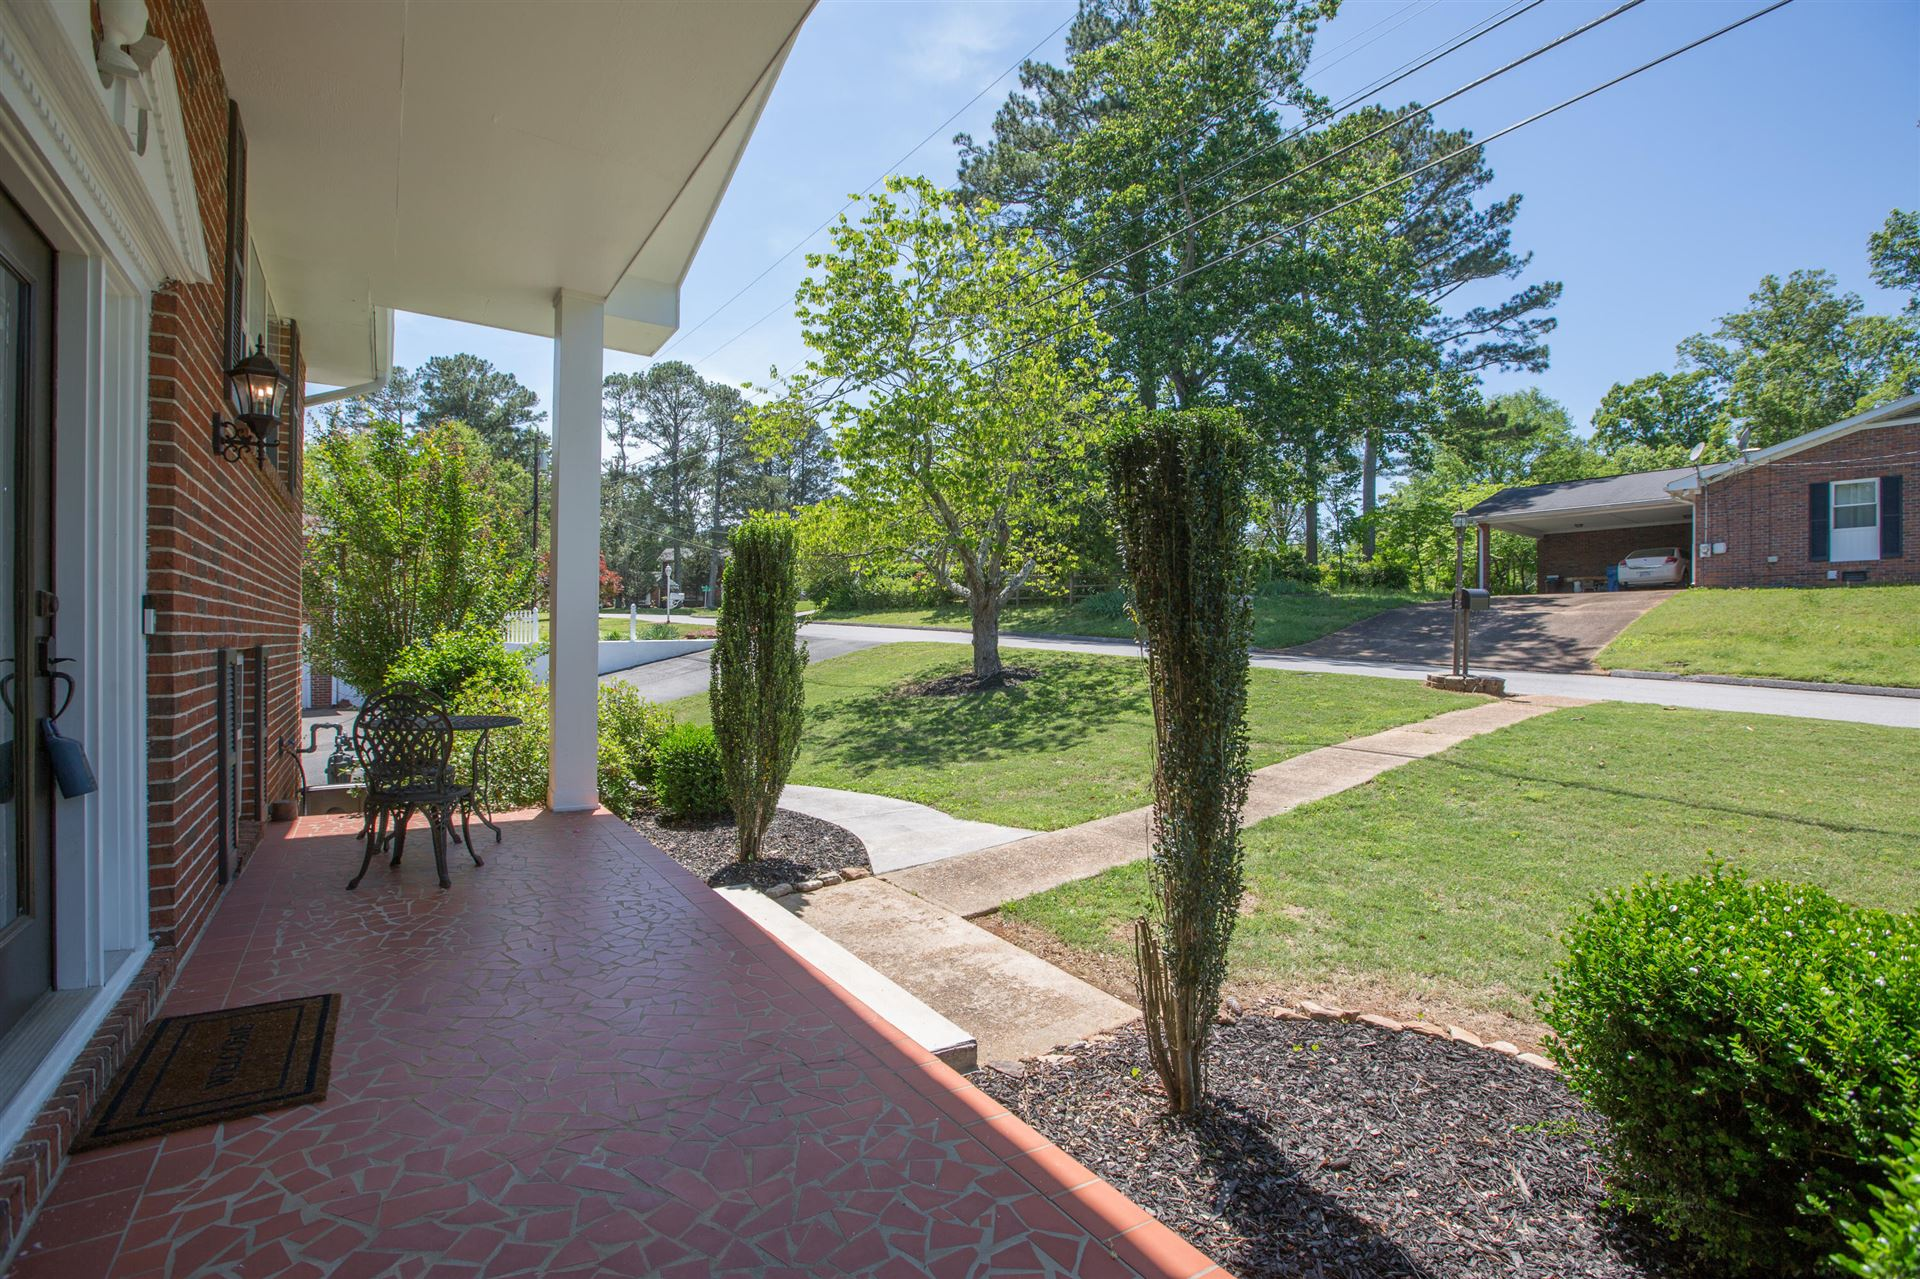 1006 Ravencrest Drive Chattanooga Tn 37421 Mls 1114909 Listing Information Real Living Southern Realty Real Living Real Estate